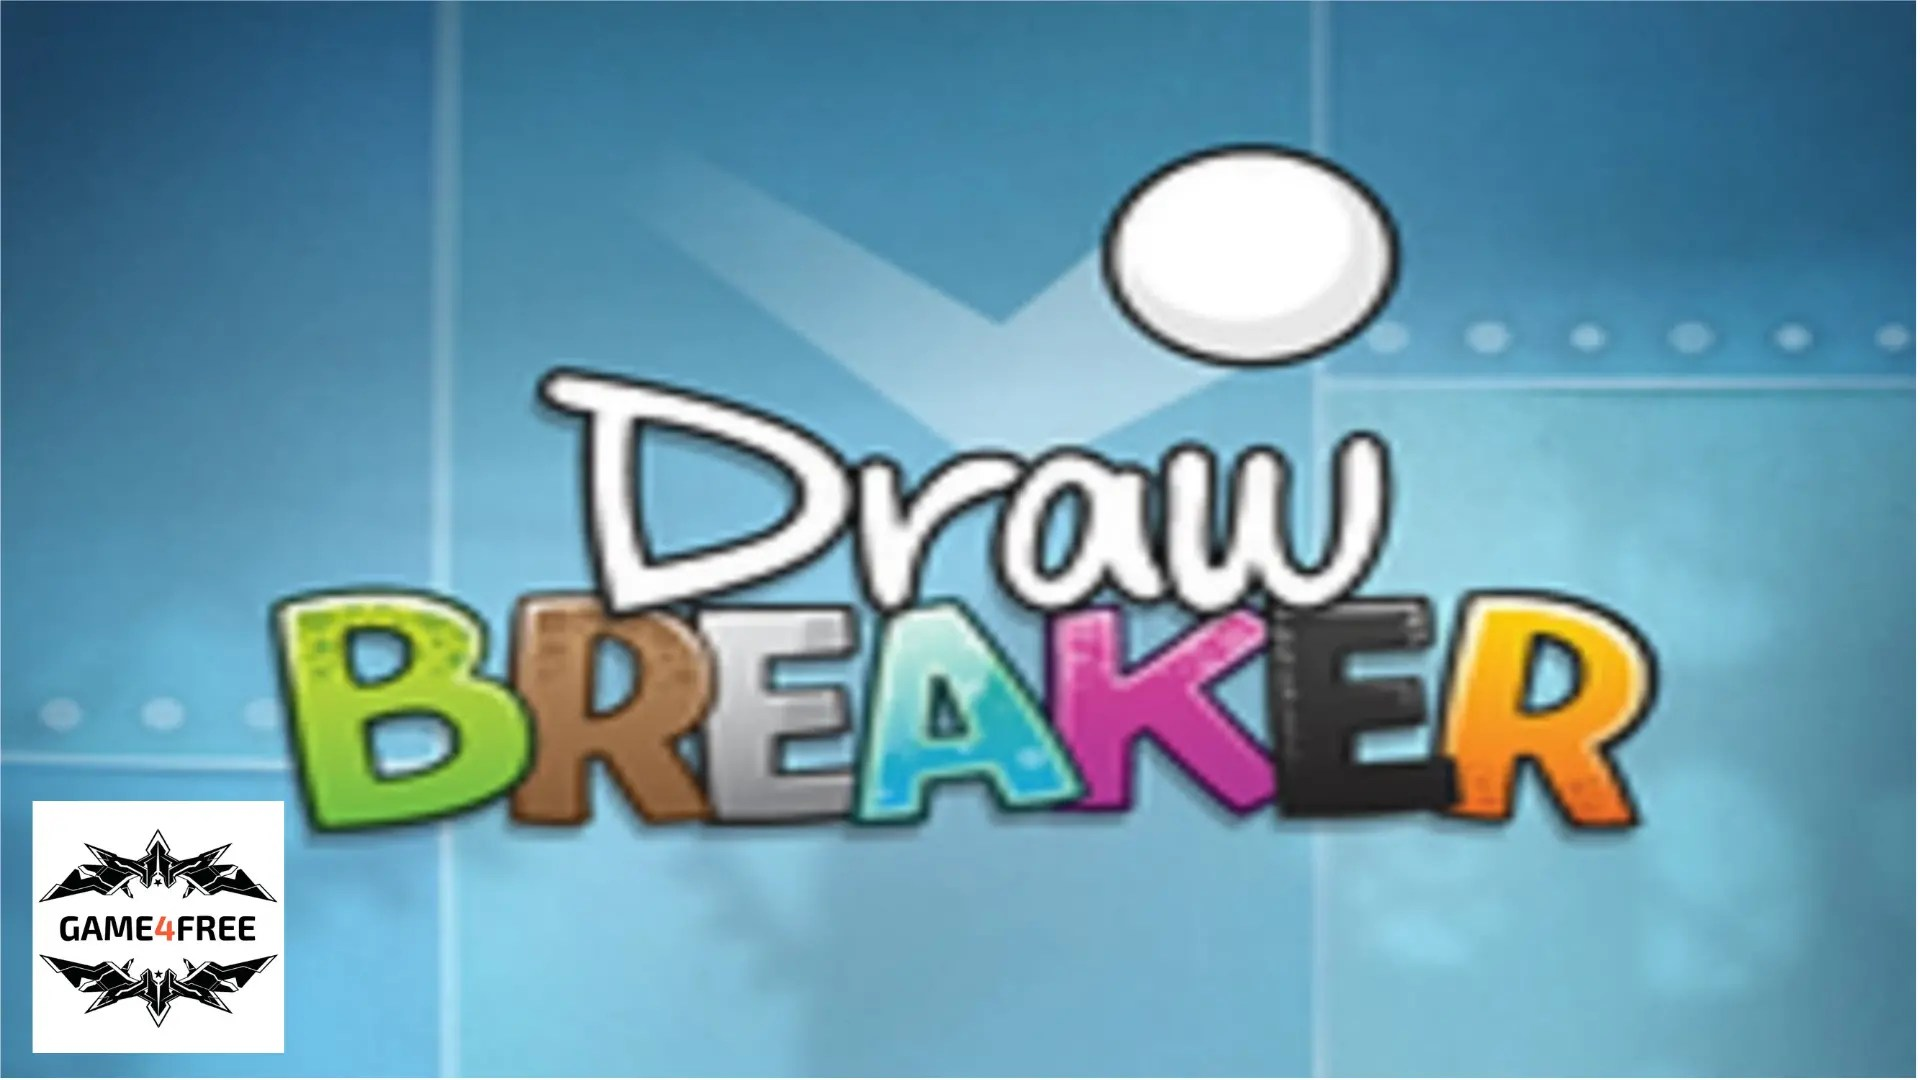 Draw breaker, un casse brique original sur iOS